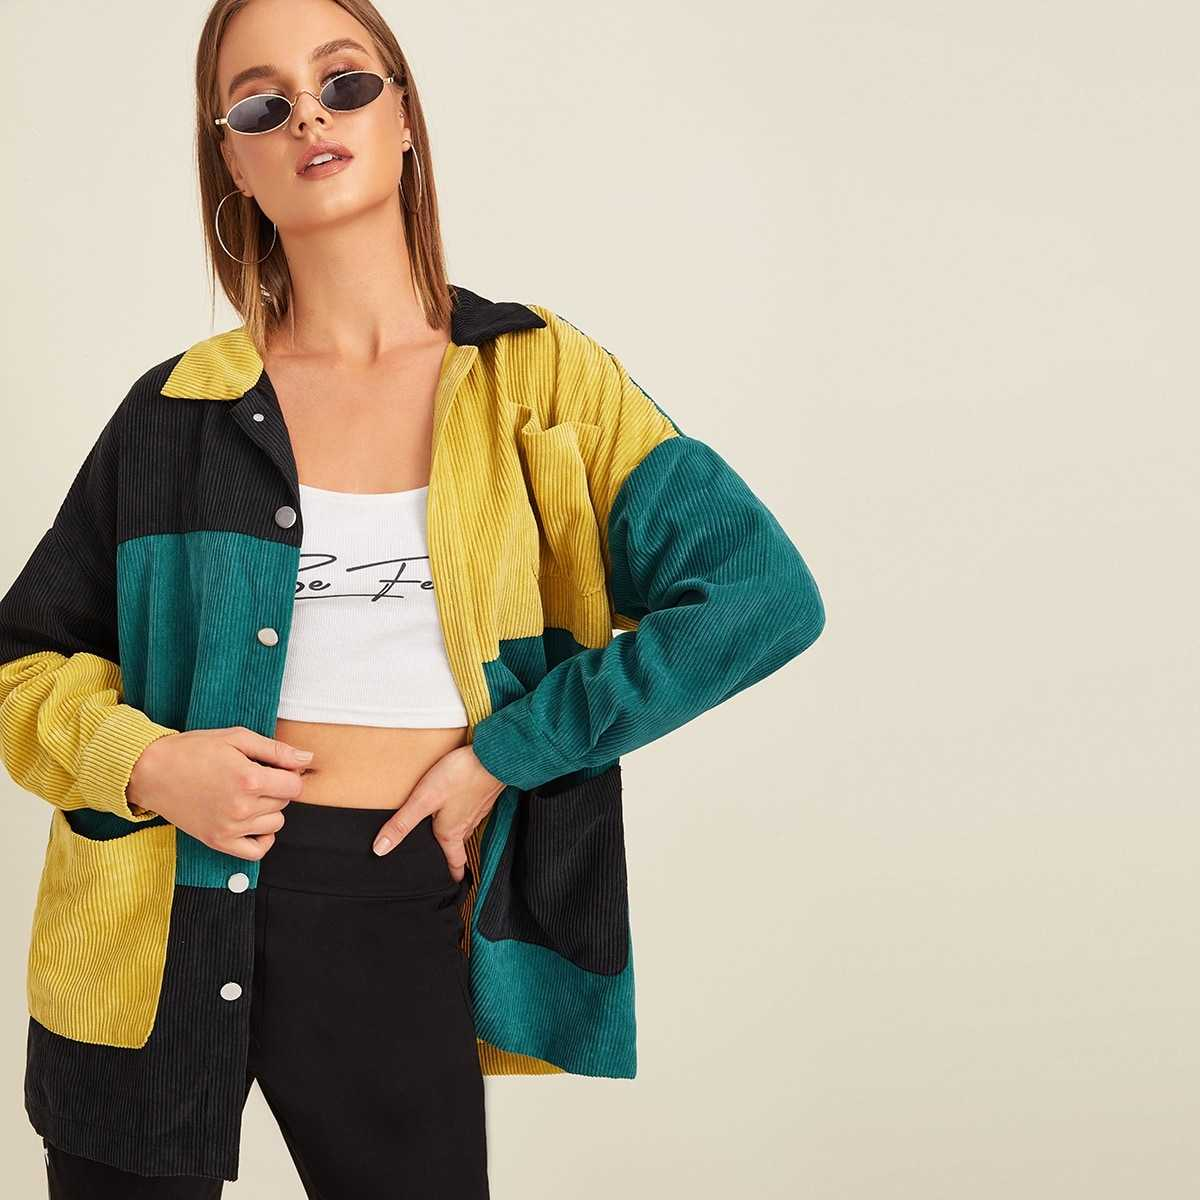 Pocket Front Colorblock Cord Coat in Multicolor by ROMWE on GOOFASH